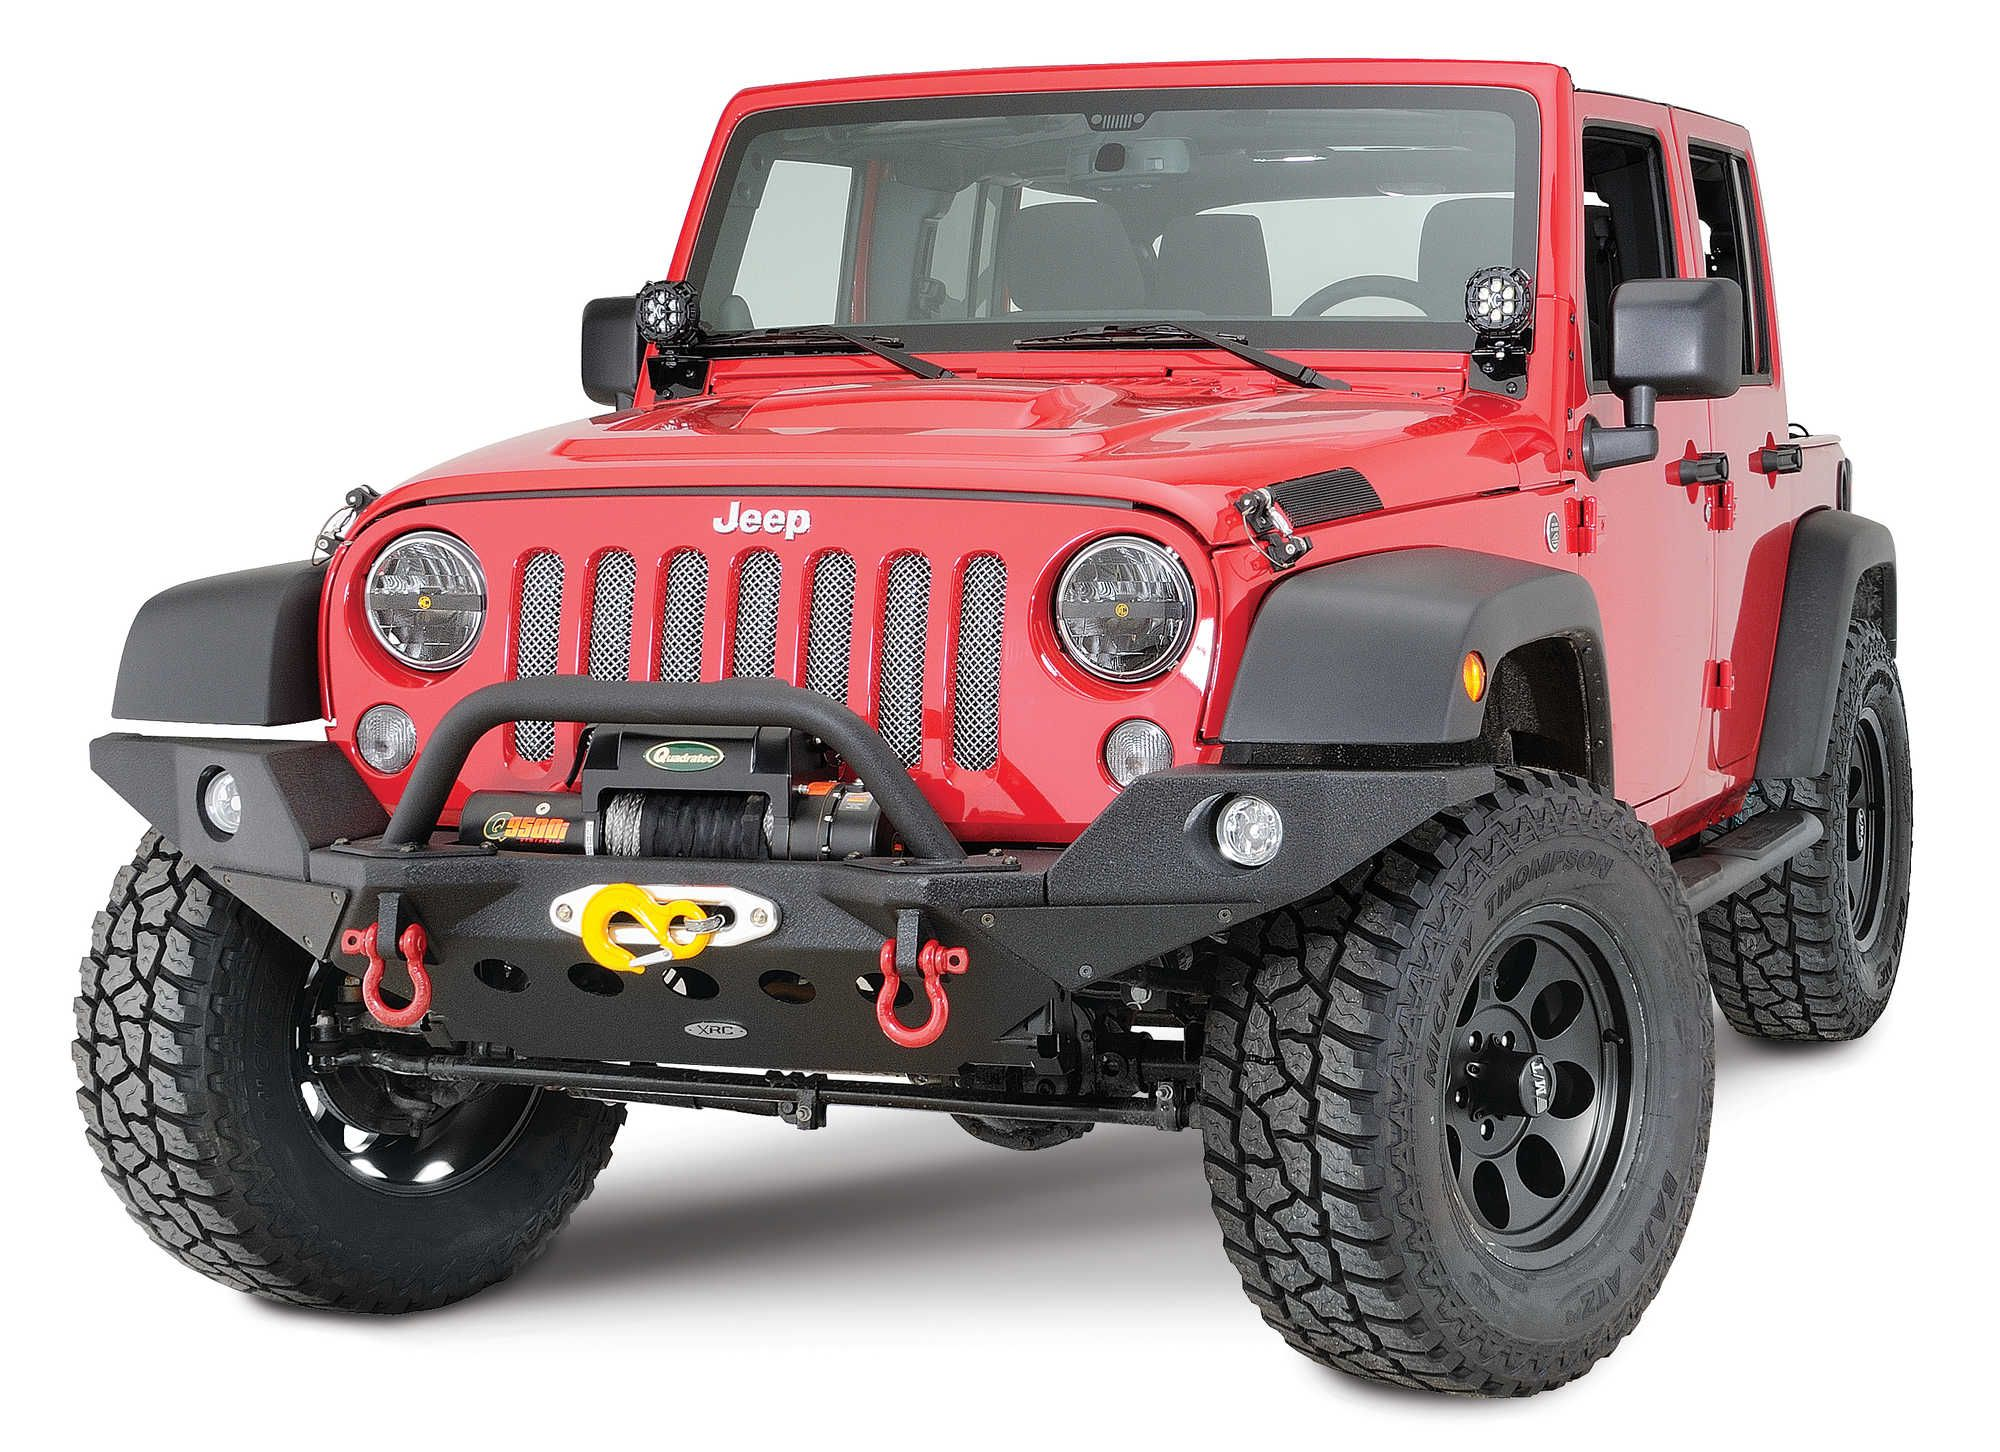 Smittybilt Xrc M O D Front Bumper And Full Width Endcaps With